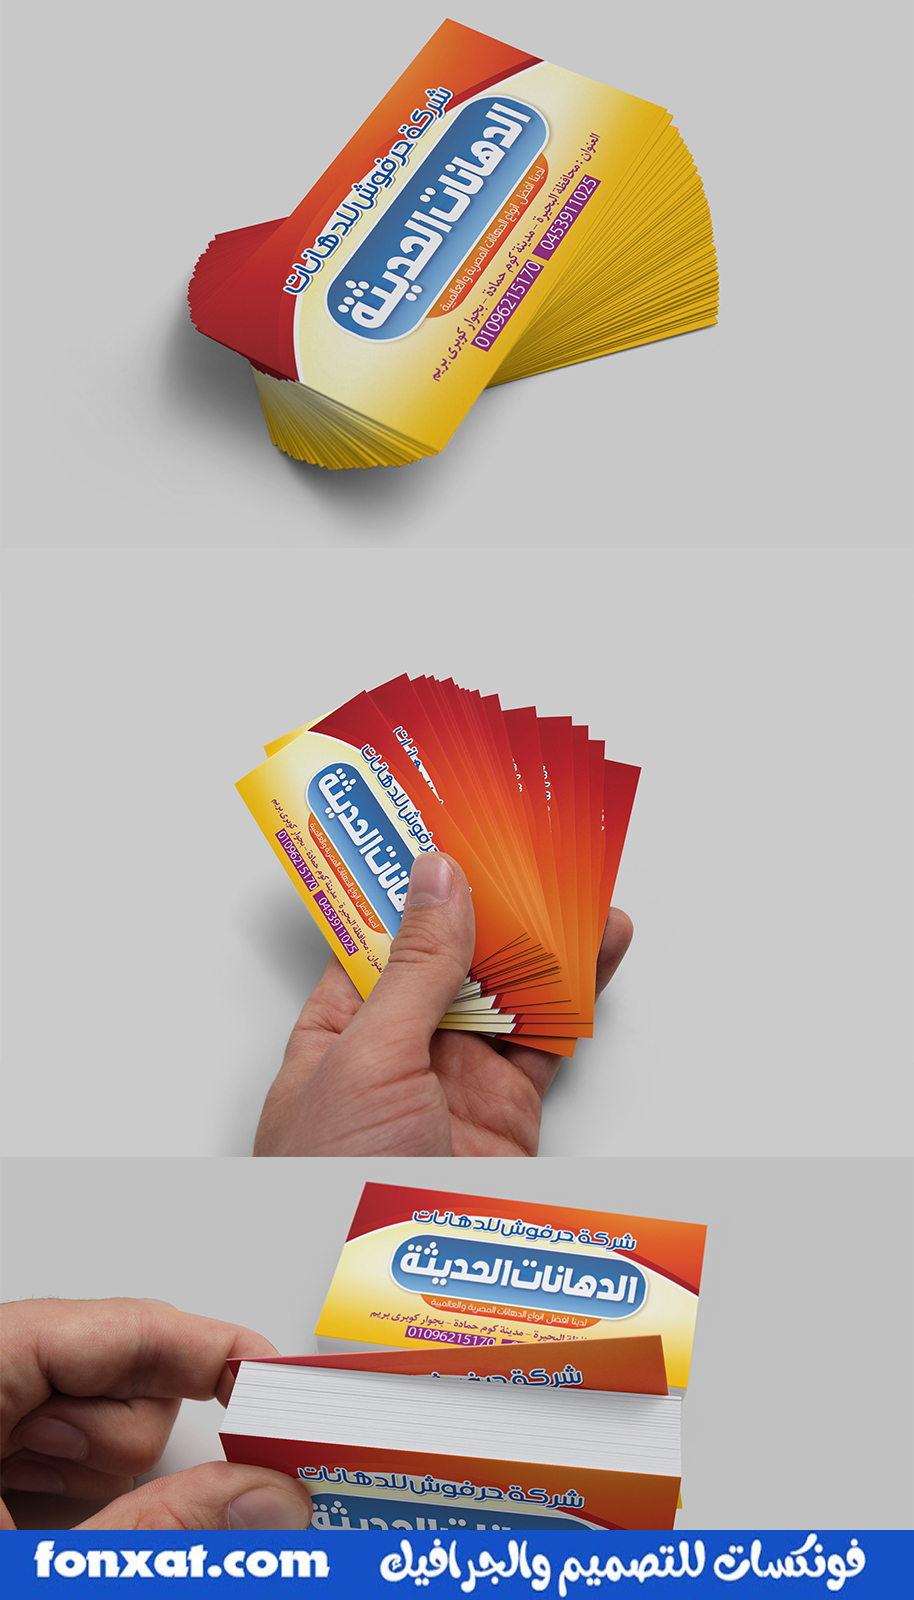 A personal card or business card for the shops and field of modern paints and paints